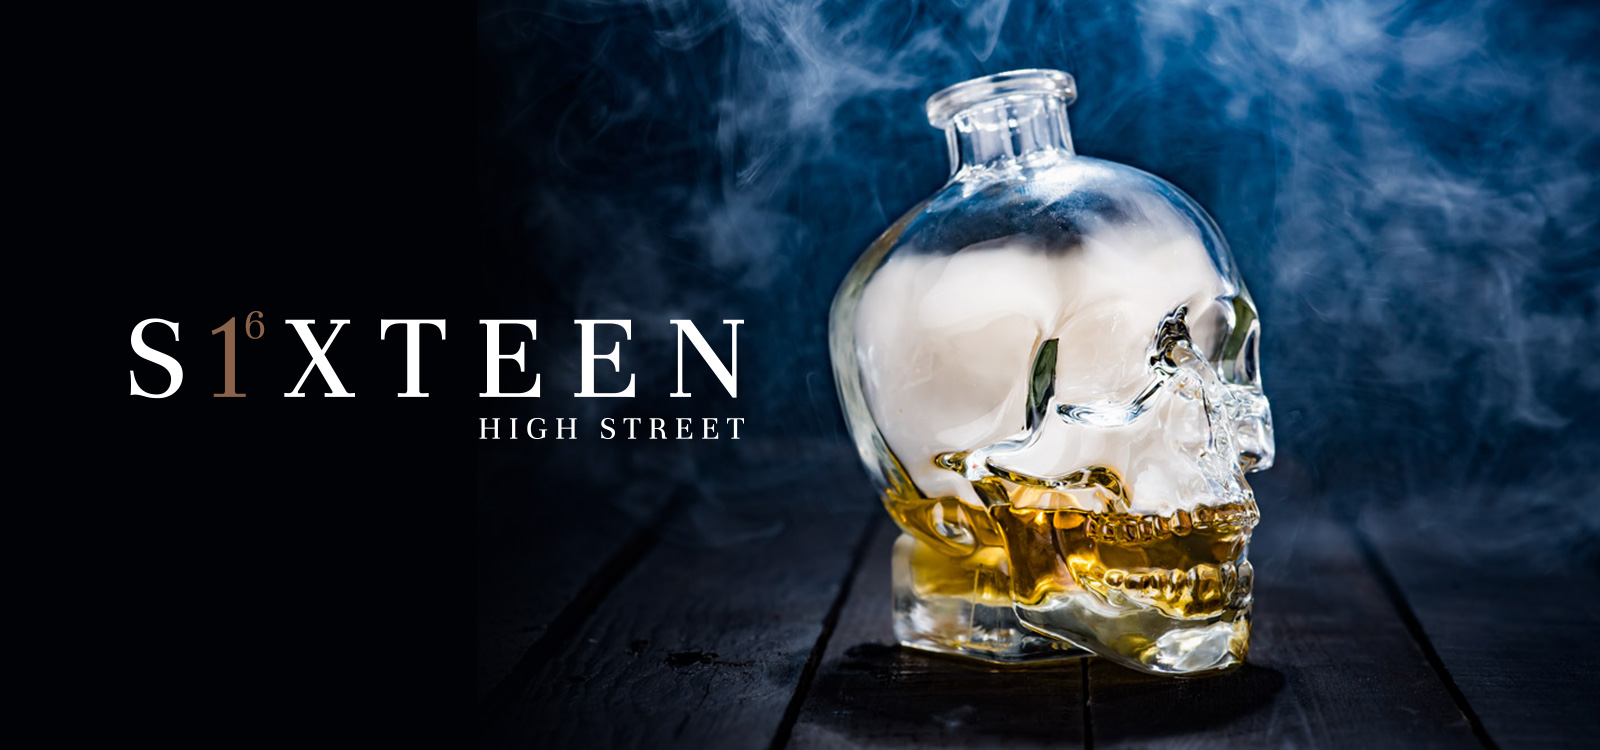 Sixteen High Street - Branding & Advertising